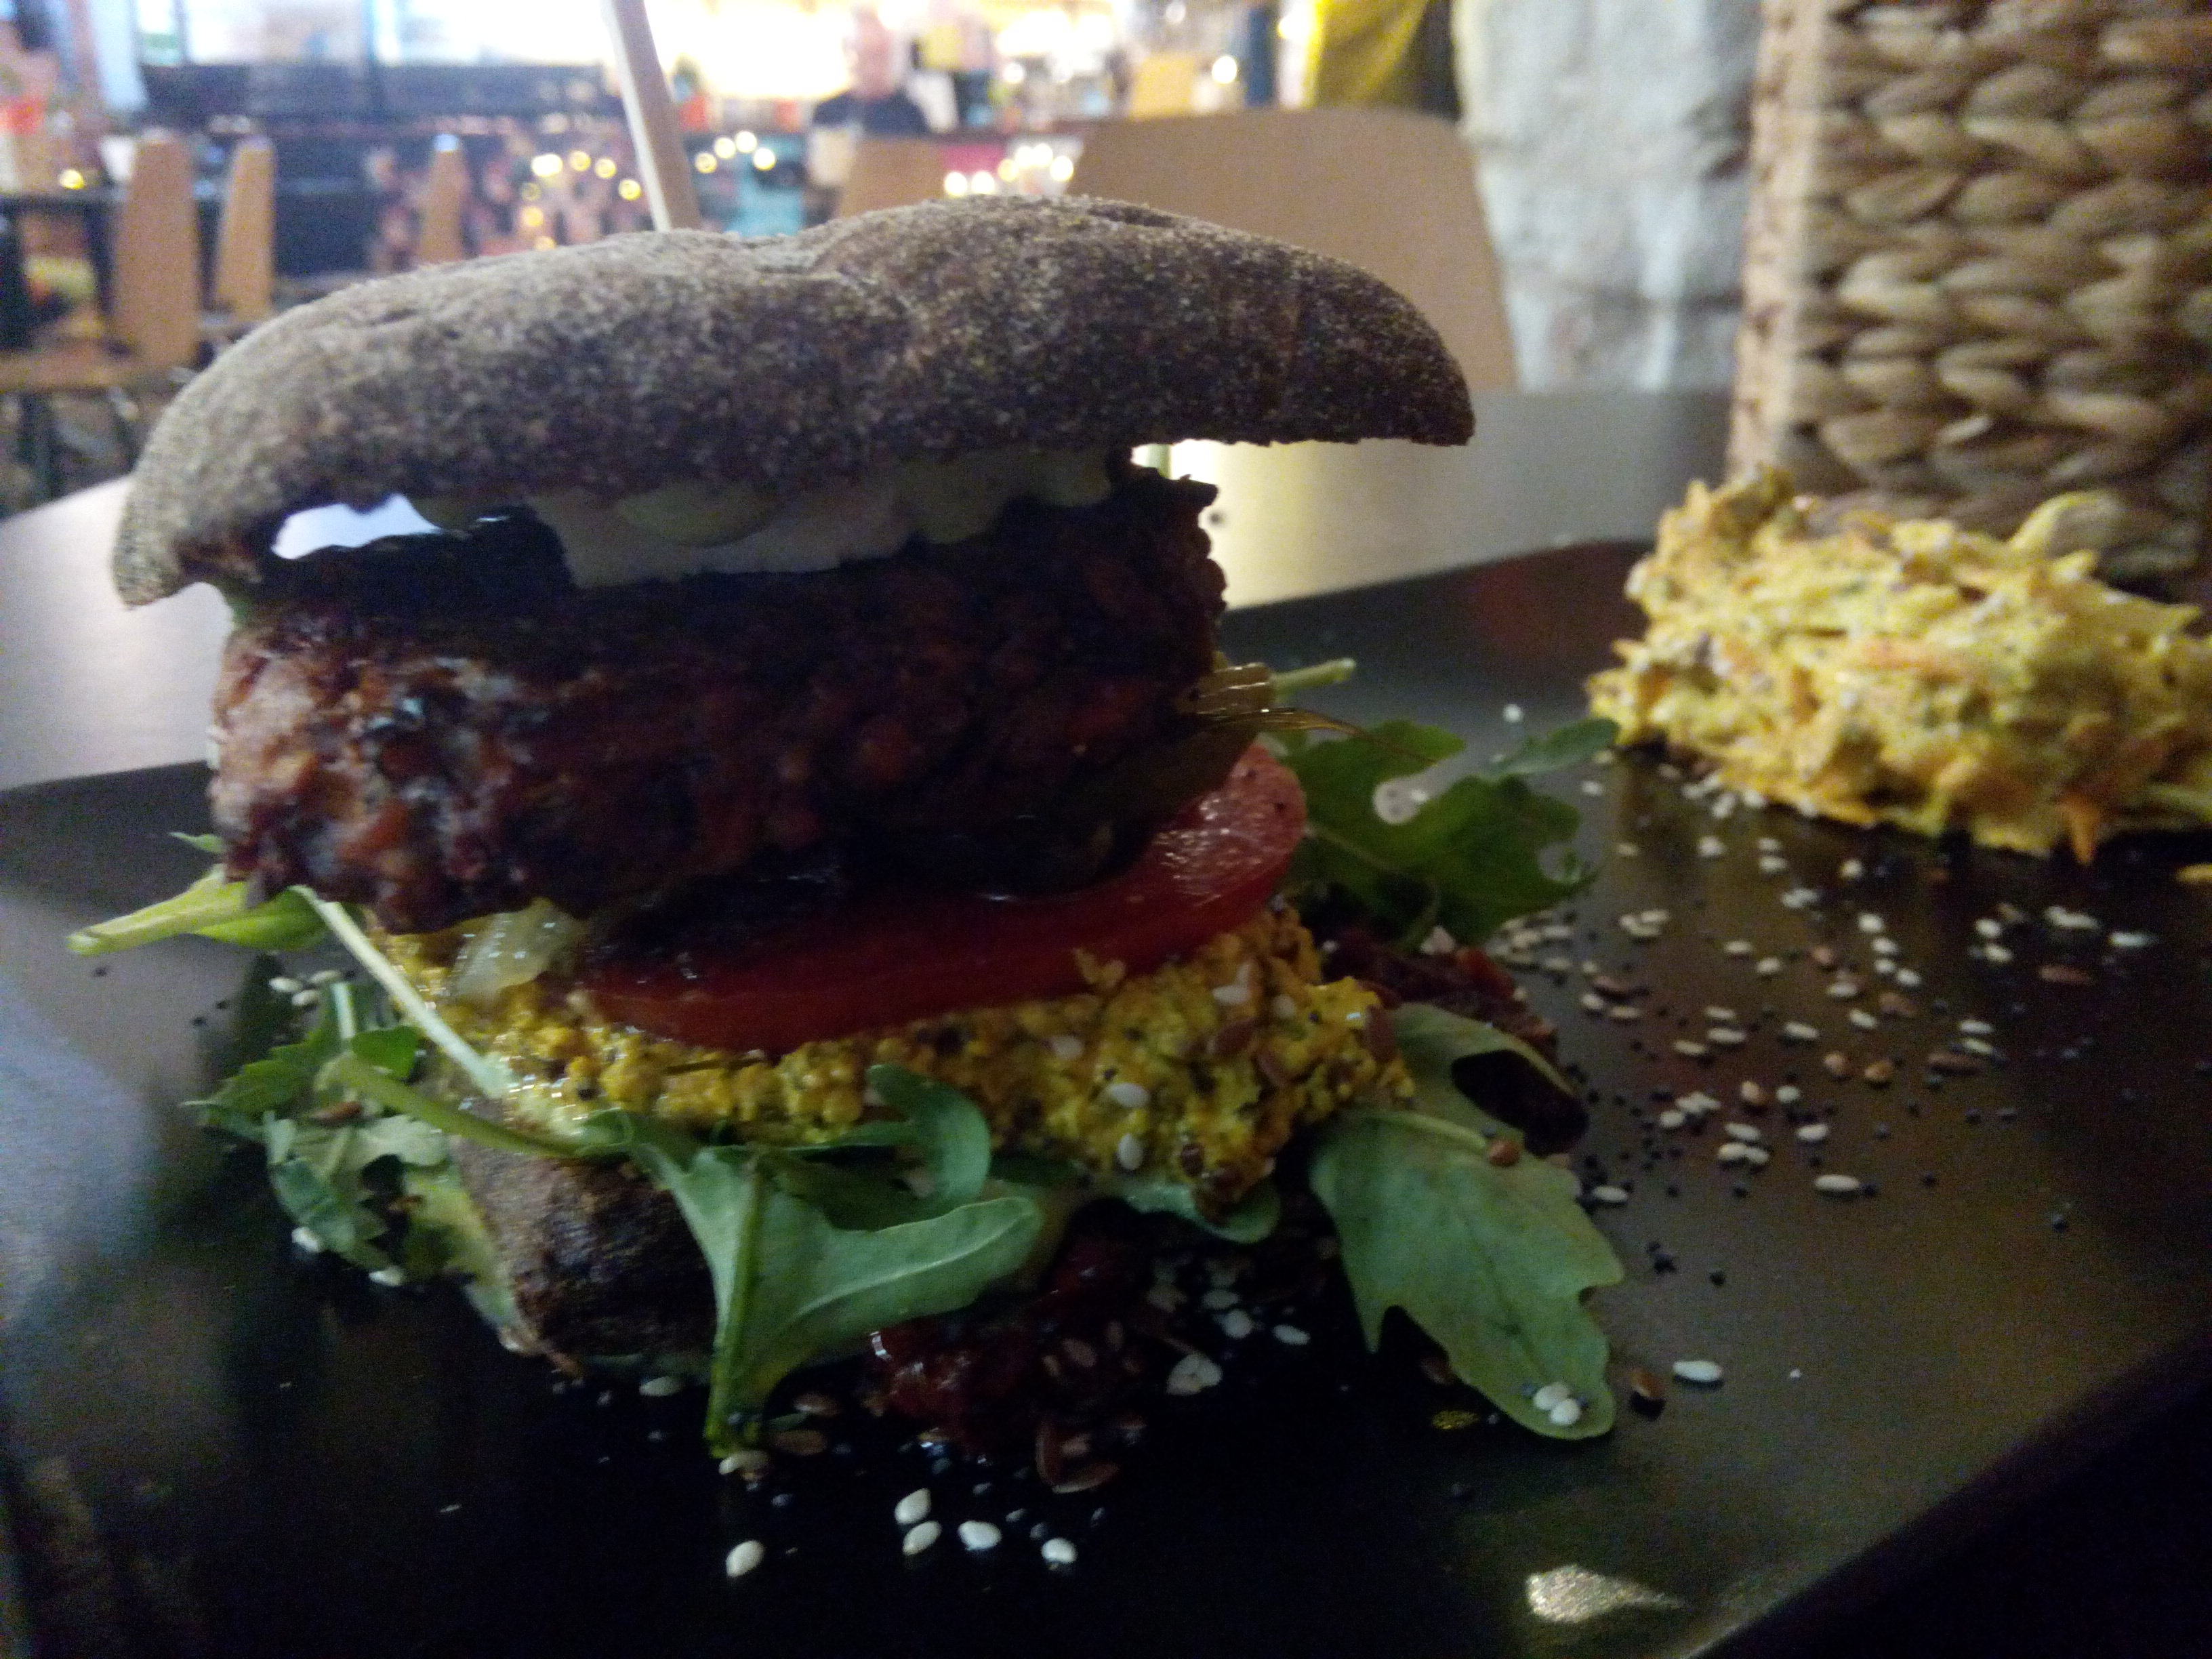 Side view of a towering burger on a black tray, with a fat patty and bright coloured salad